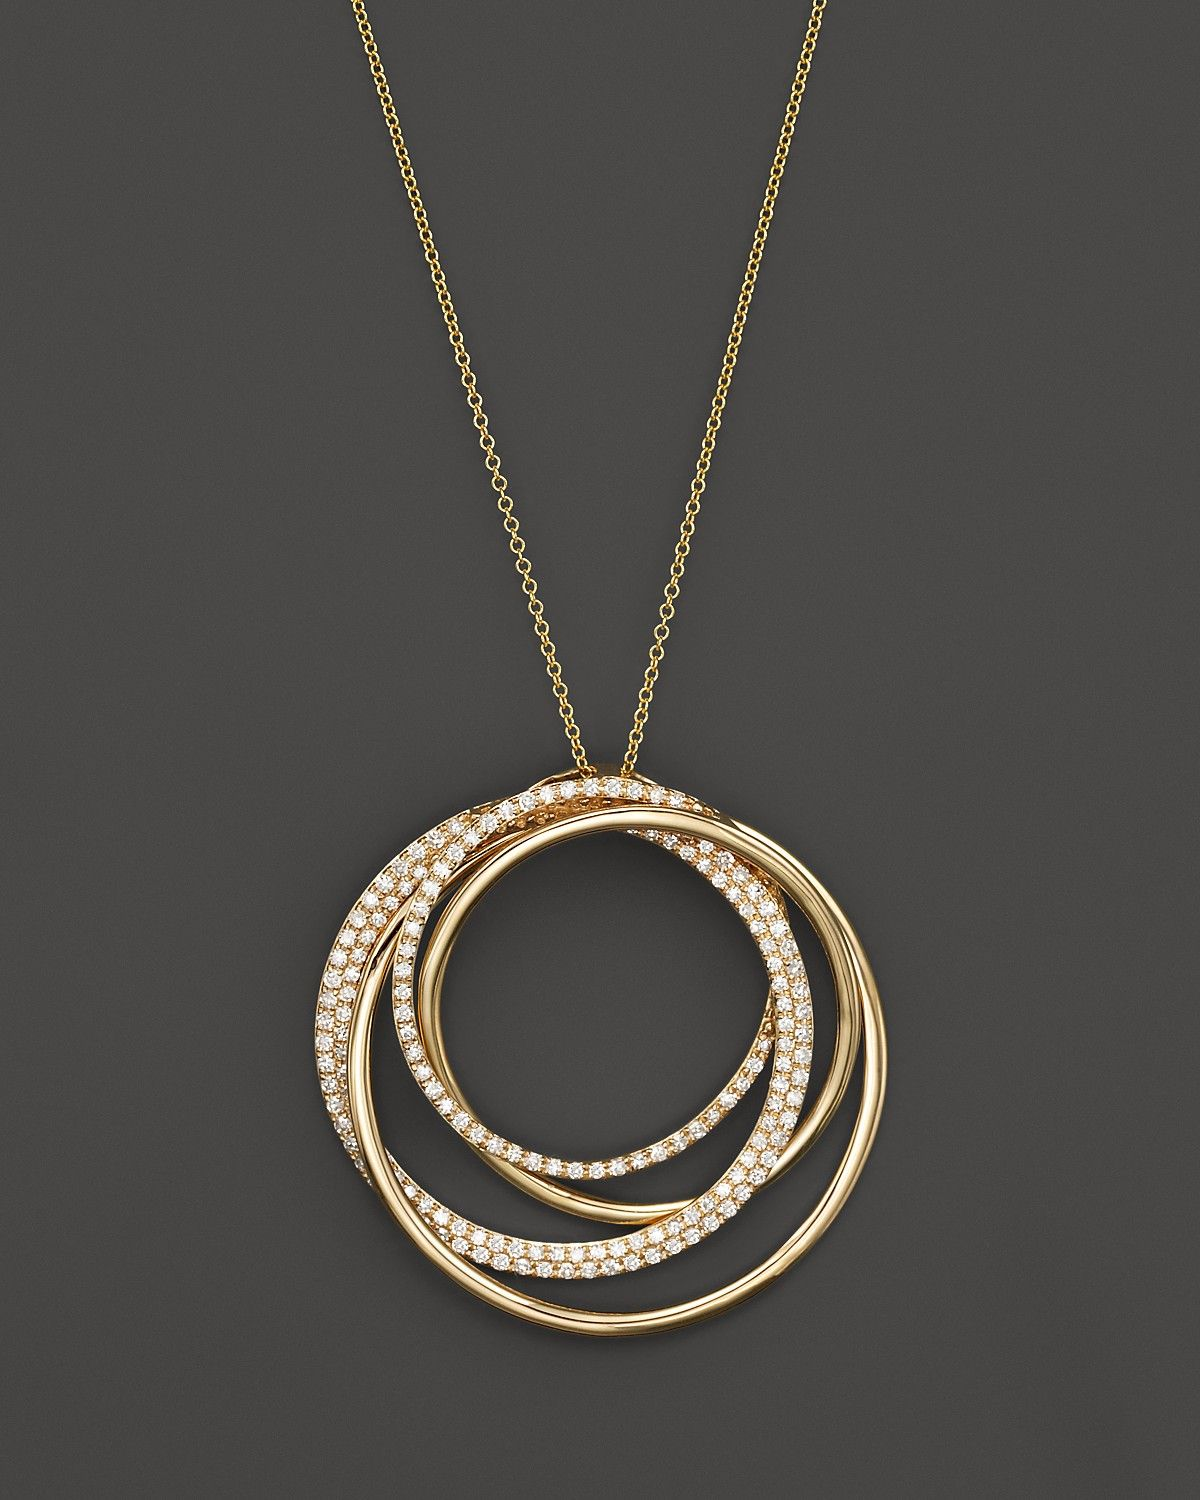 Diamond Overlapping Circle Pendant Necklace In 14k Yellow Gold 70 Ct T W Circle Pendant Necklace Diamond Jewelry Necklace Pendant Necklace Simple